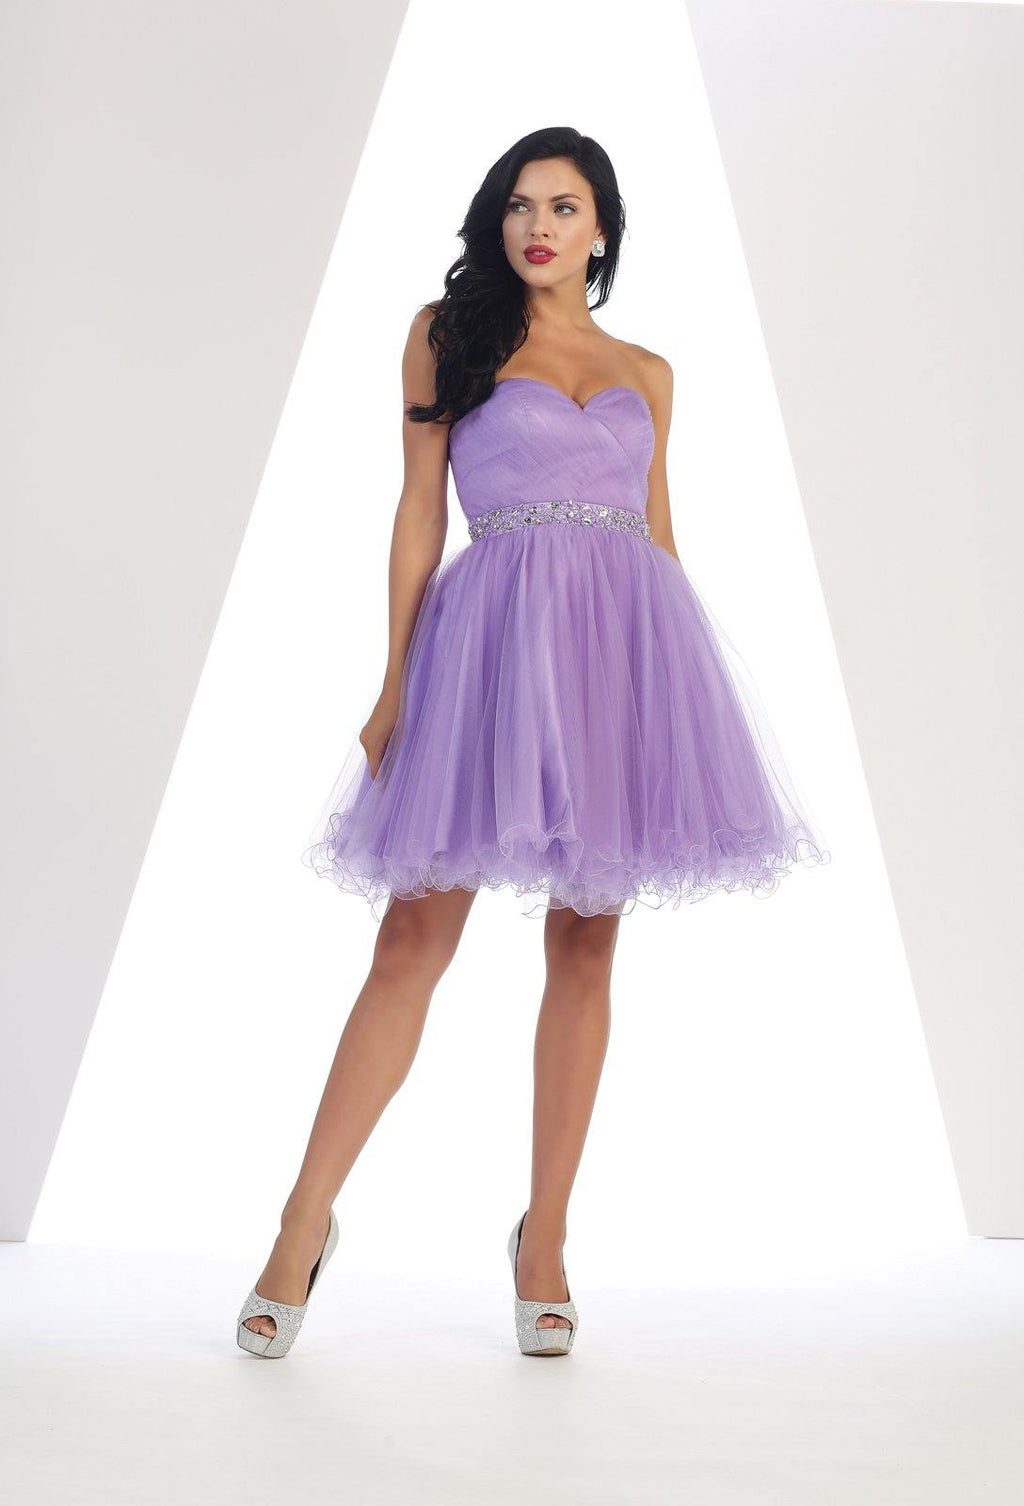 Strapless Short Dress Homecoming - The Dress Outlet Lilac